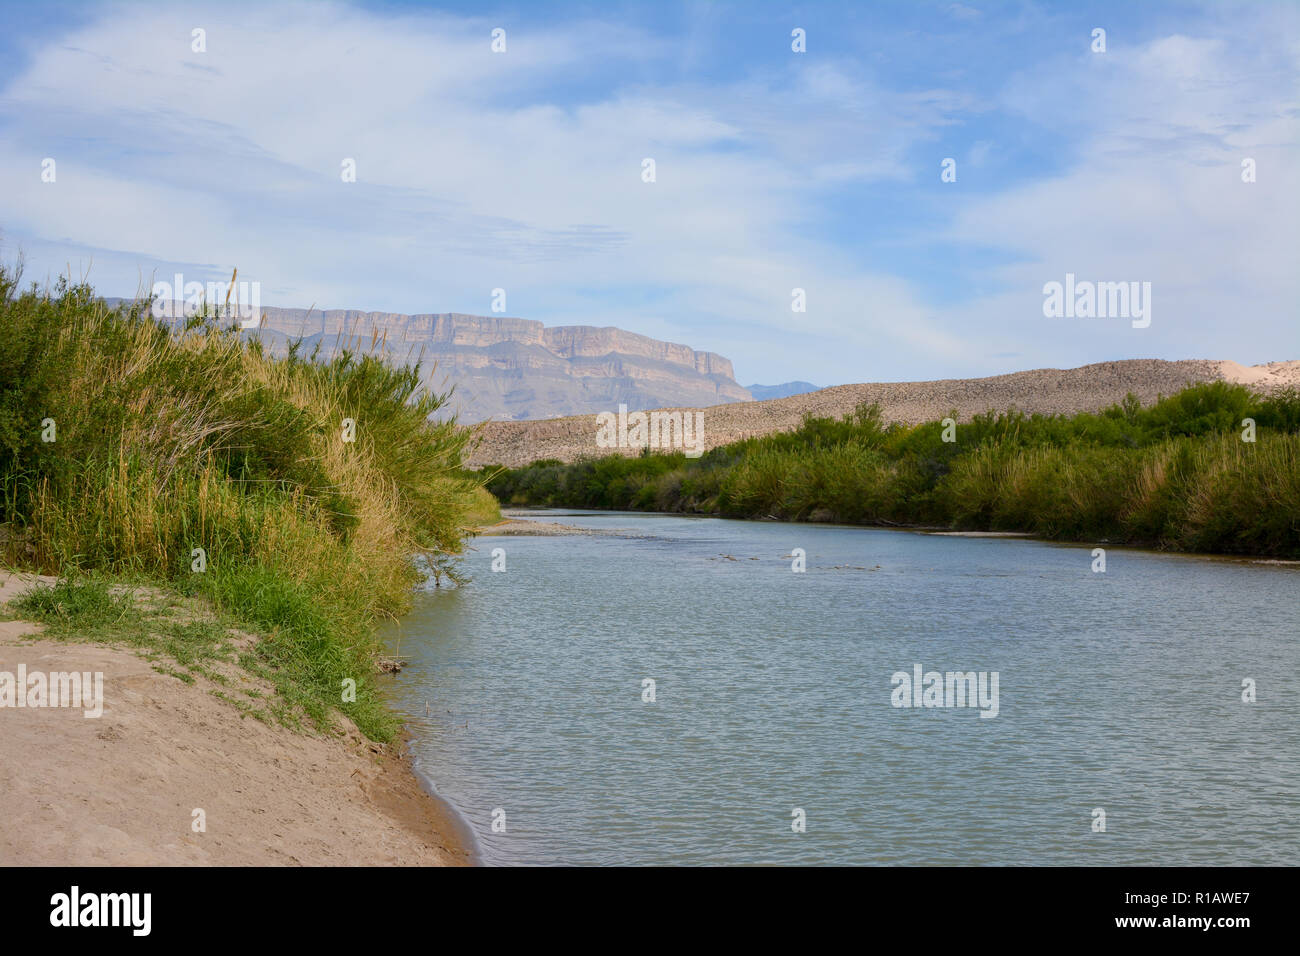 The Rio Grande river flowing along the U.S. Mexico border in Big Bend National Park. Stock Photo